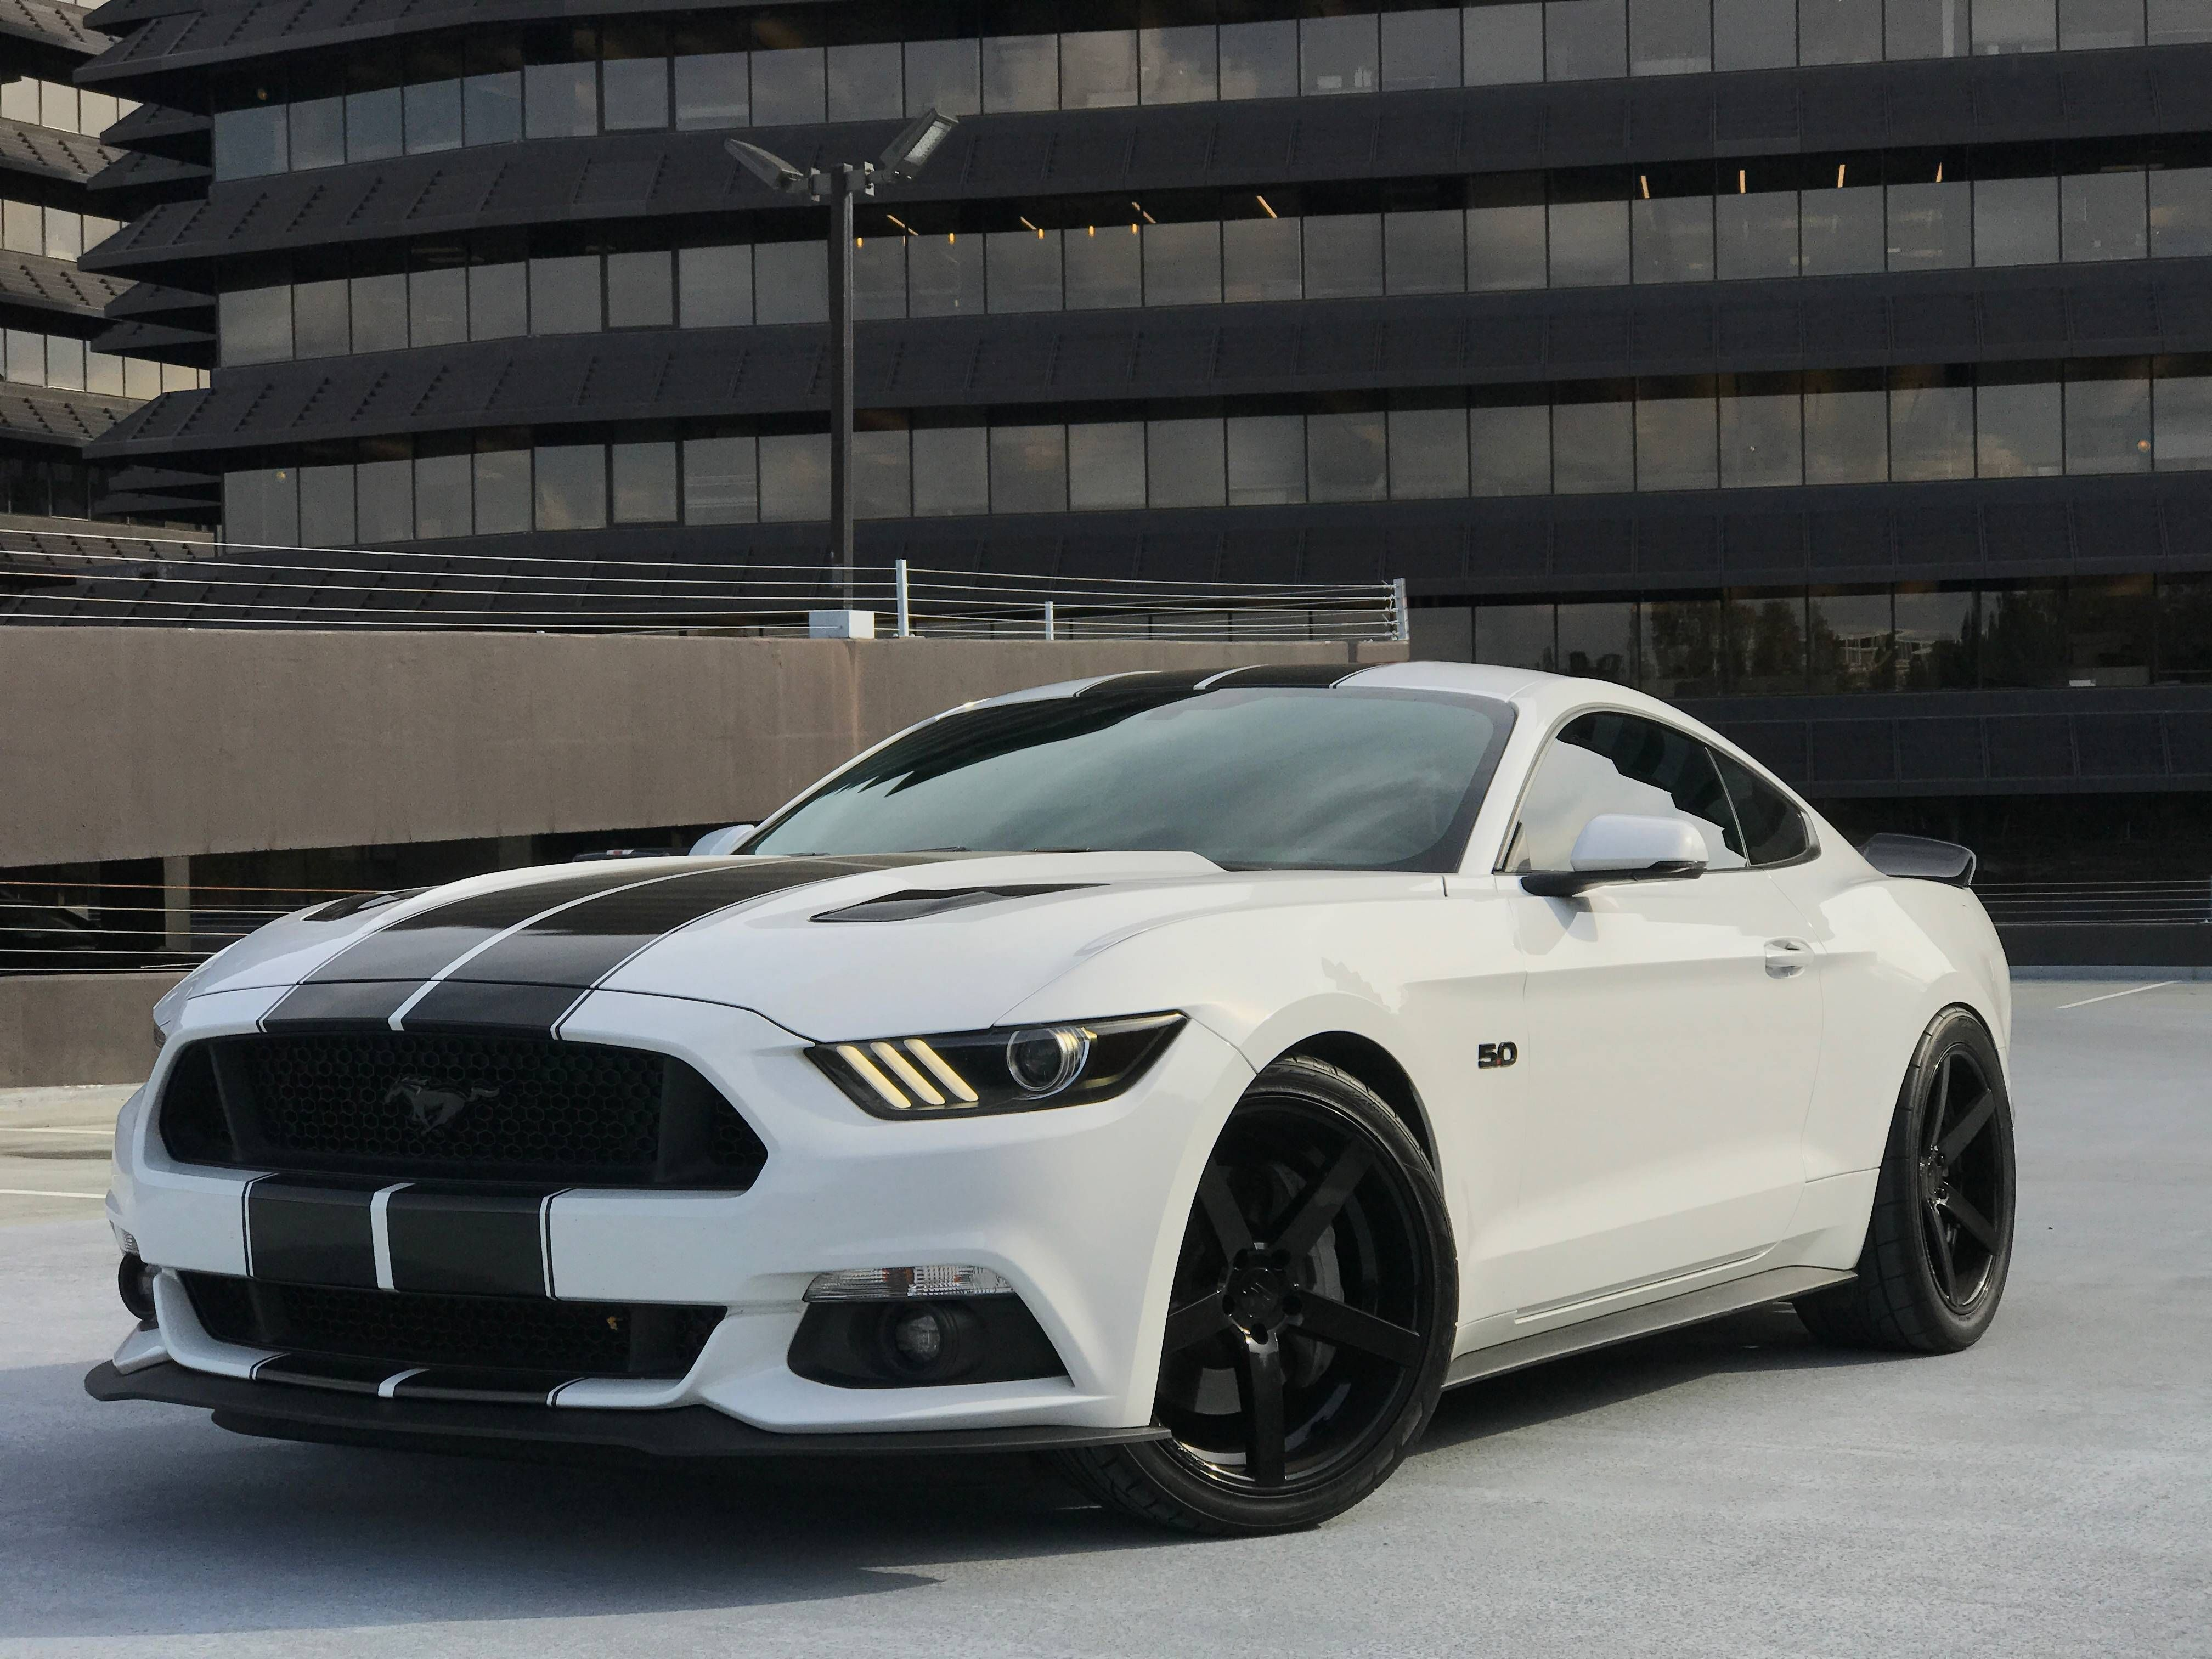 S550 got some new wheels and cosmetic mods mustang usedcar car cars